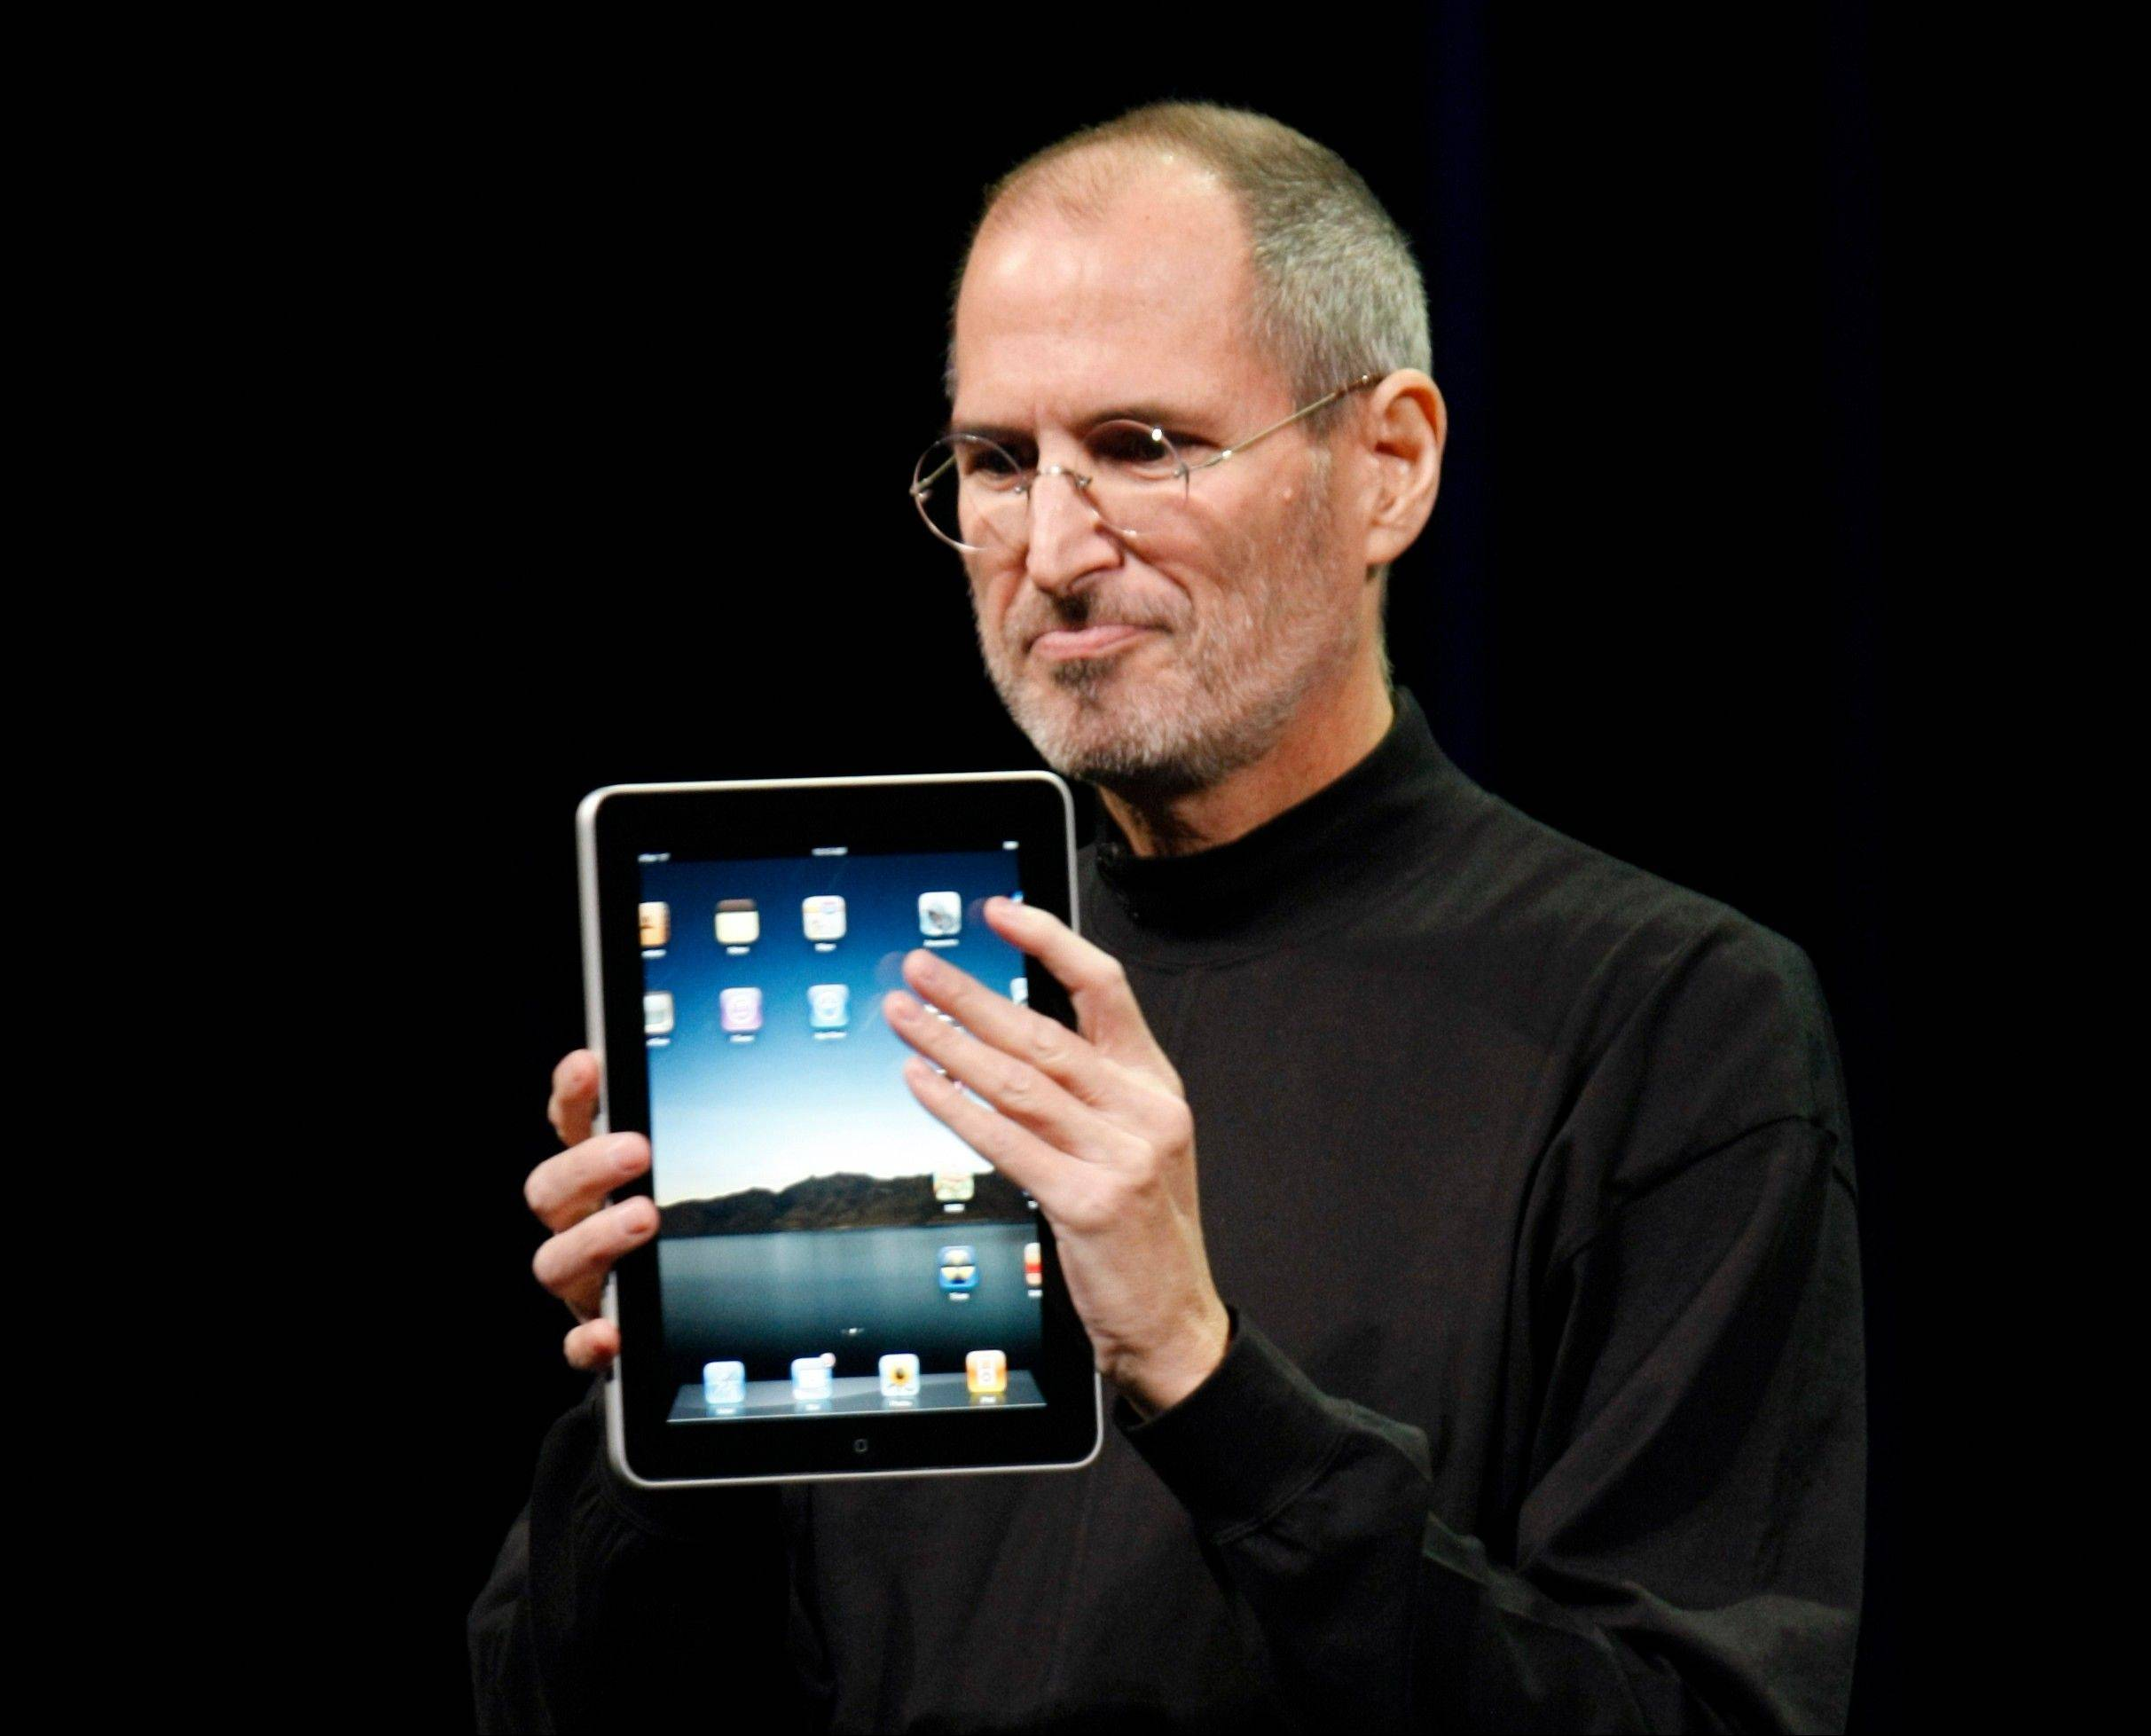 Imagine the potential treasures inside the stolen iPad of the late Steve Jobs, secret corporate documents, personal correspondence and maybe even game prototypes. Professional entertainer Kenny the Clown, who unwittingly received the stolen tablet after the Apple co-founder's Palo Alto home was burglarized last month, says he never examined the touch-screen device's contents.